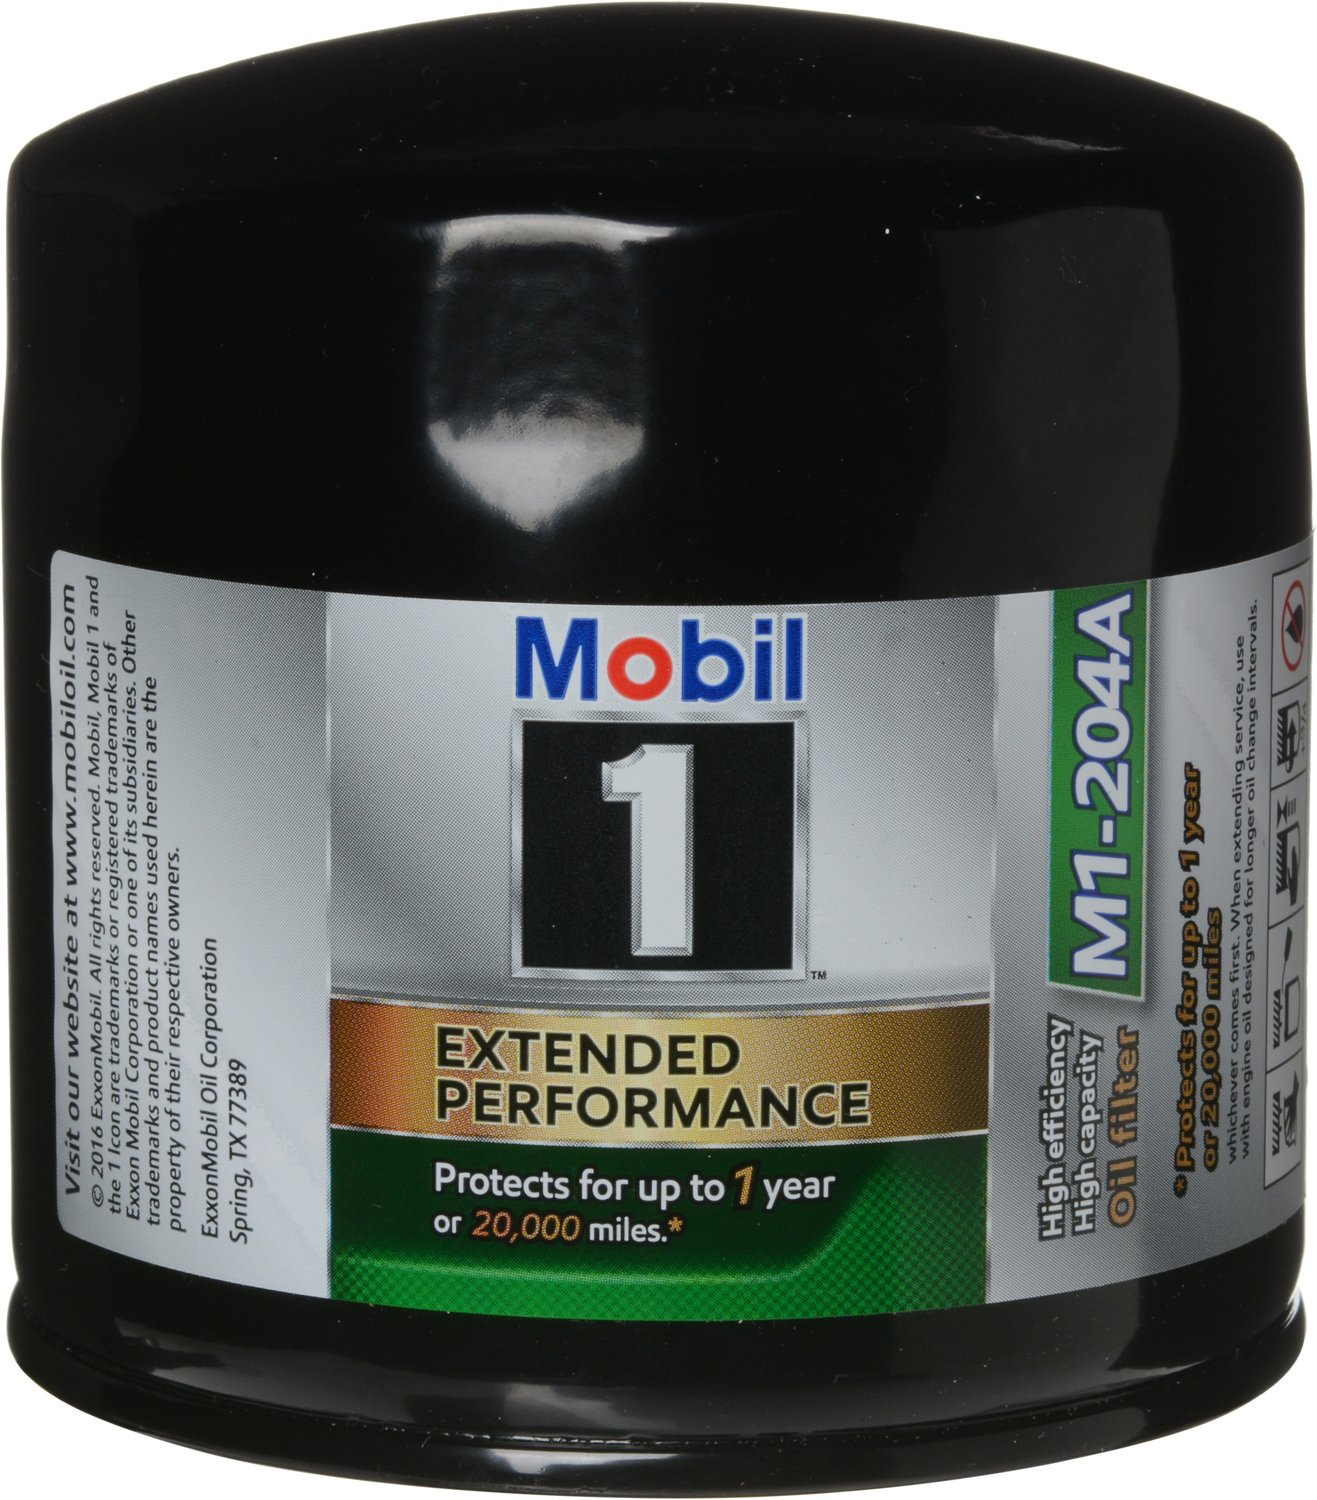 Mobil 1 M1-204A Extended Performance Oil Filter by Mobil 1